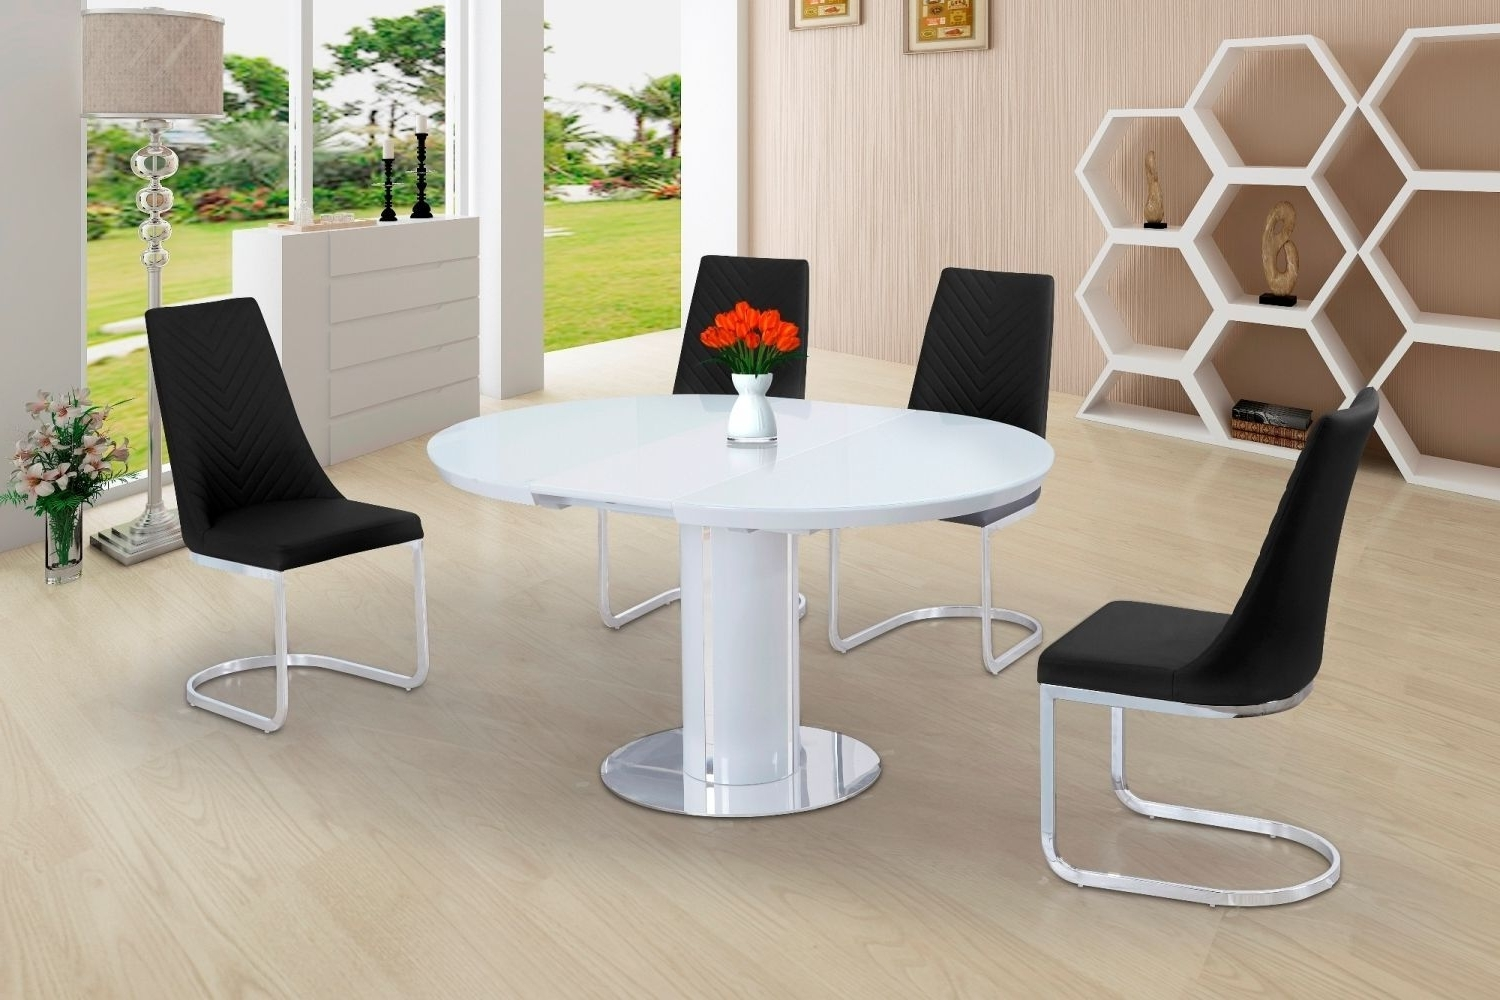 Widely Used Eclipse Round Oval Gloss & Glass Extending 110 To 145 Cm Dining In White Oval Extending Dining Tables (View 25 of 25)